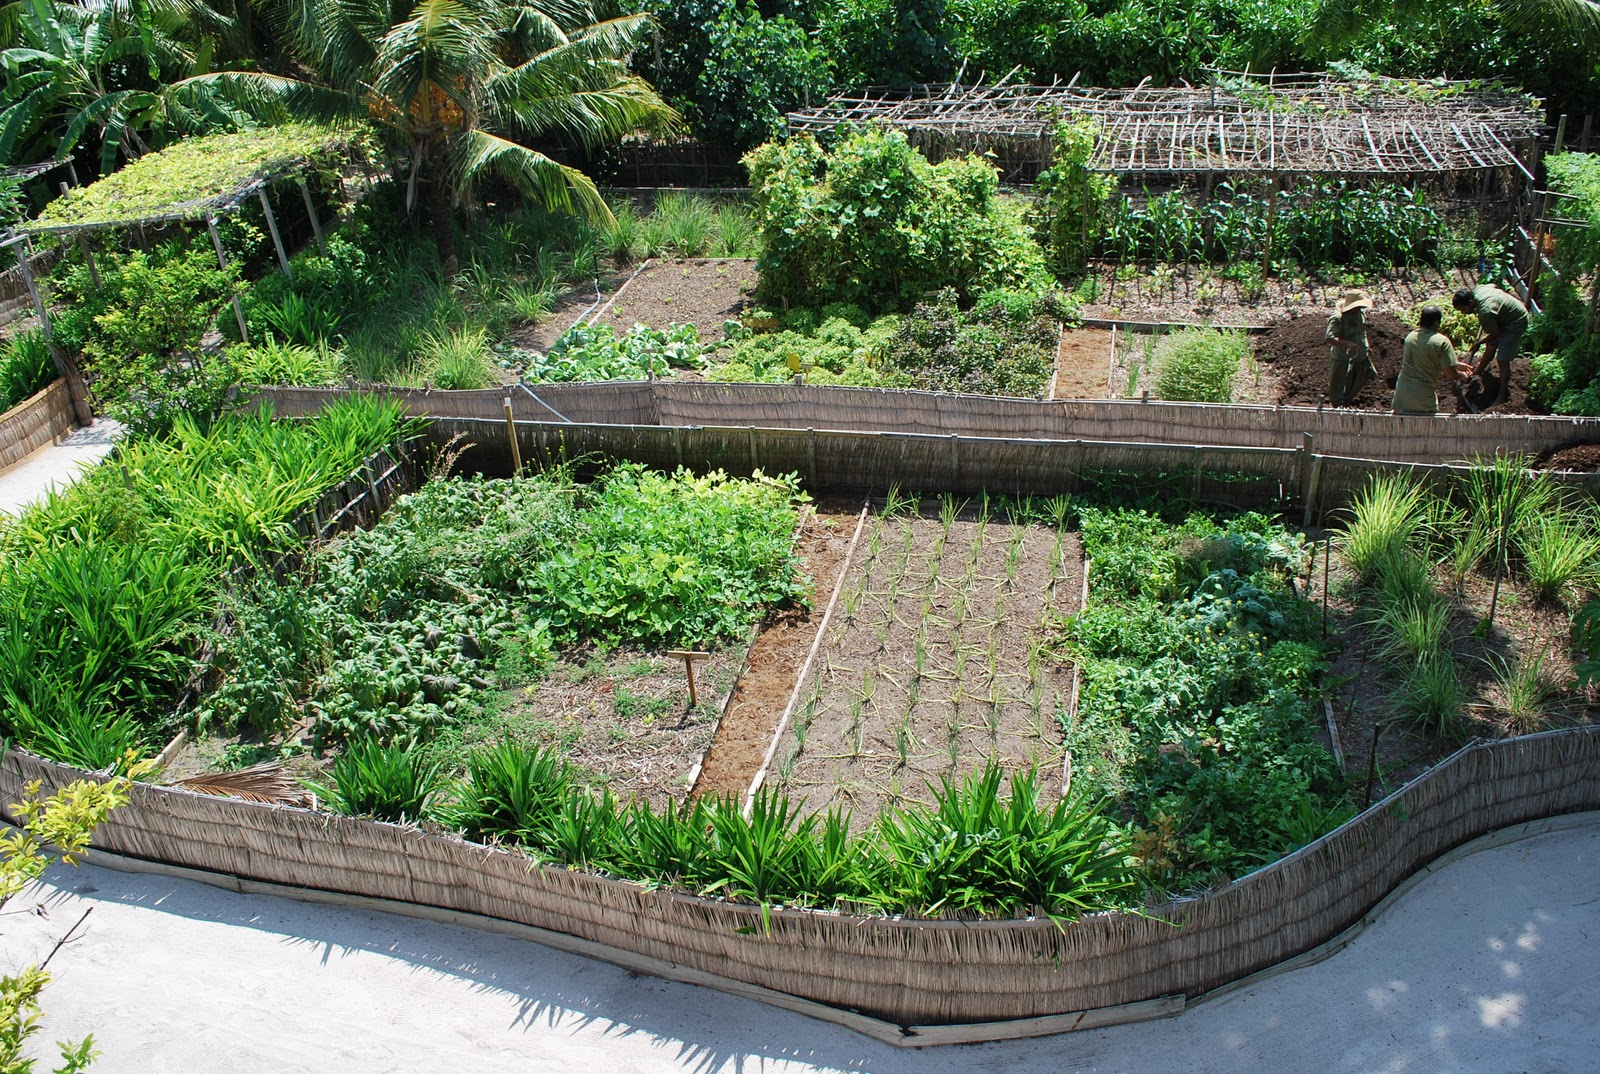 Garden design permaculture pinterest for Images of garden designs